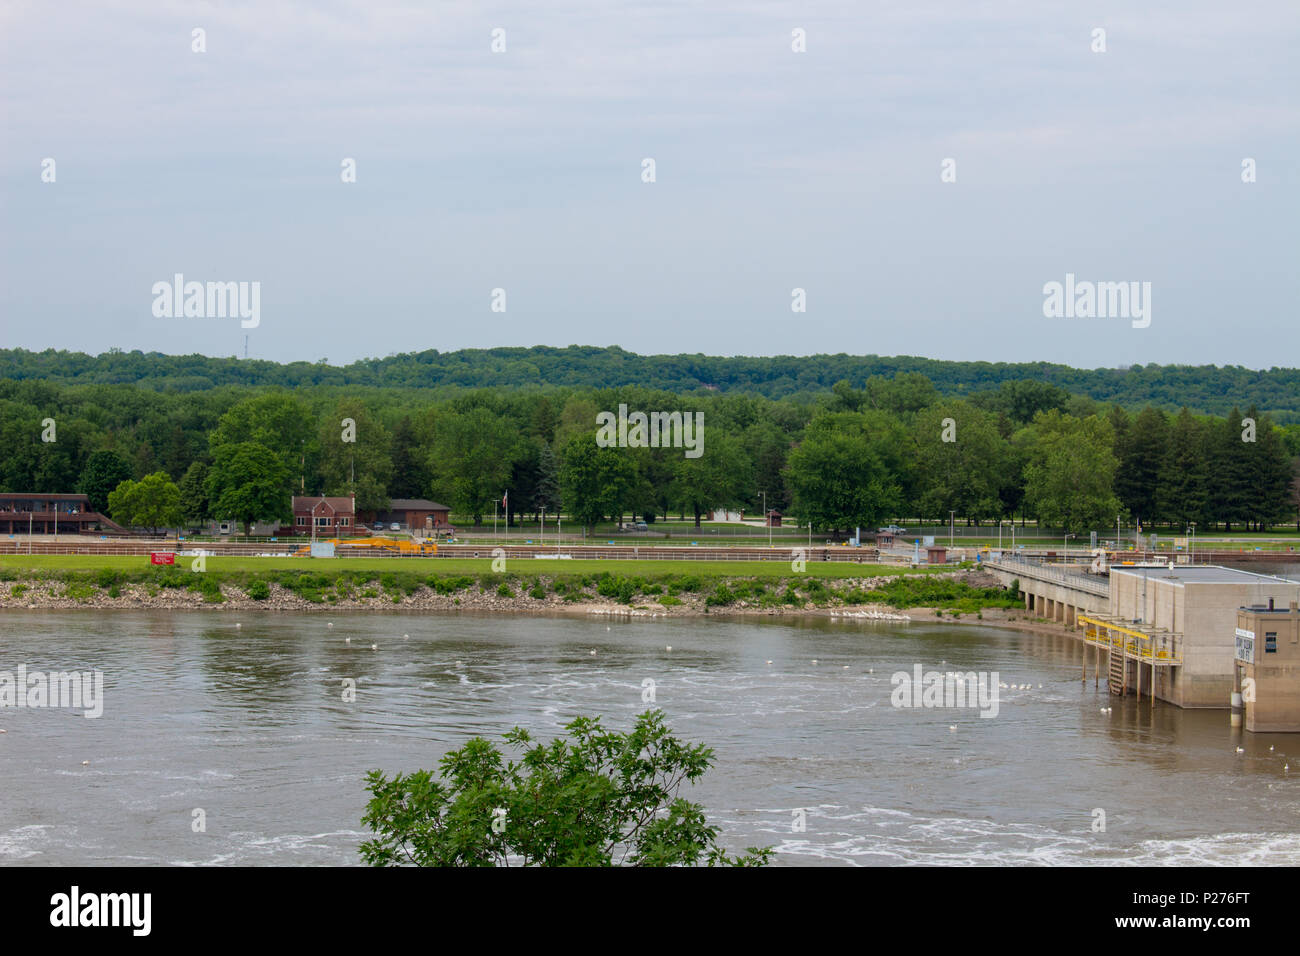 illinois river at starved rock natural park, united states of america - Stock Image